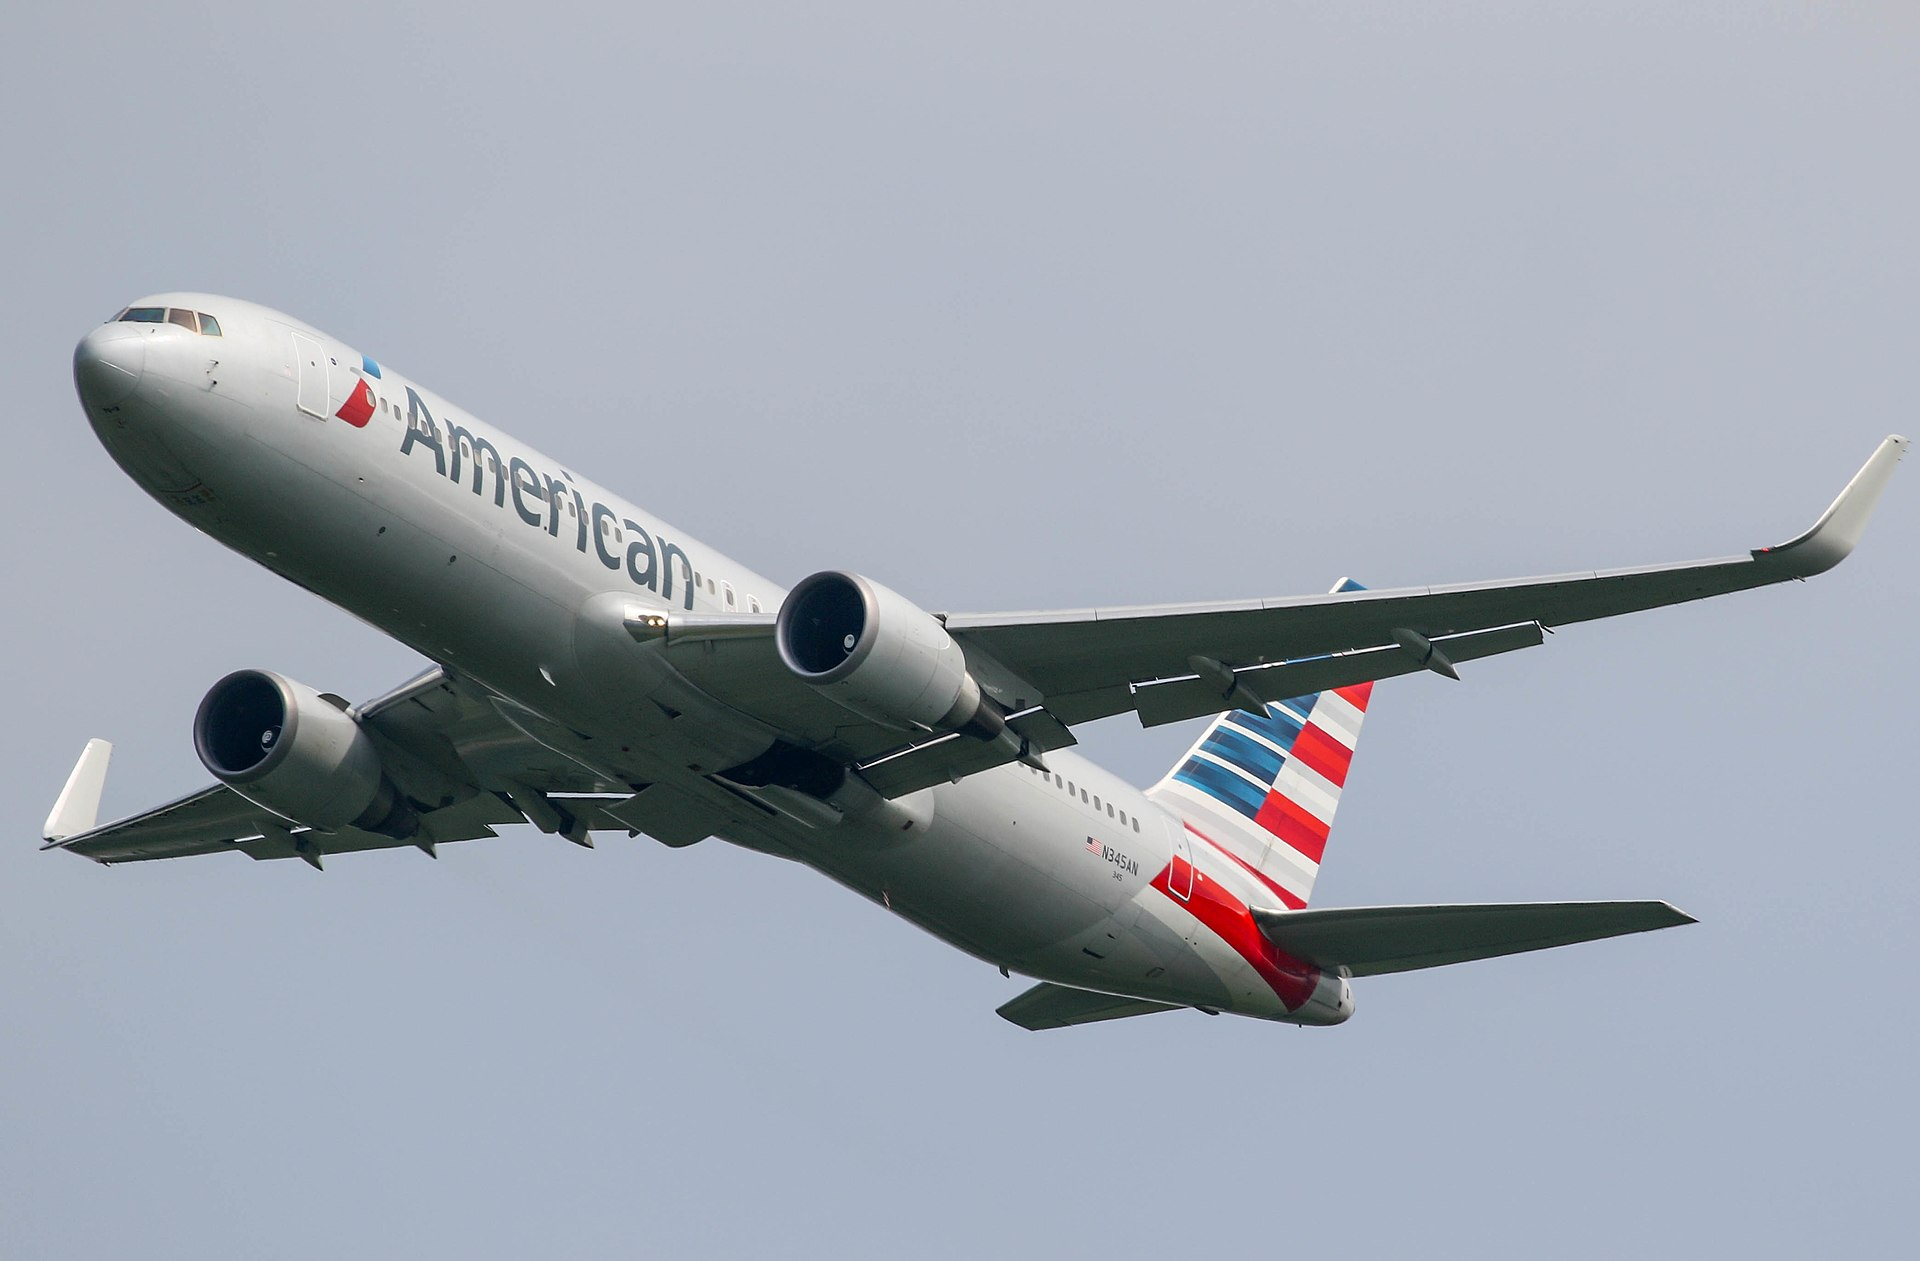 American airlines flight 383 2016 wikipedia for American airlines plane types